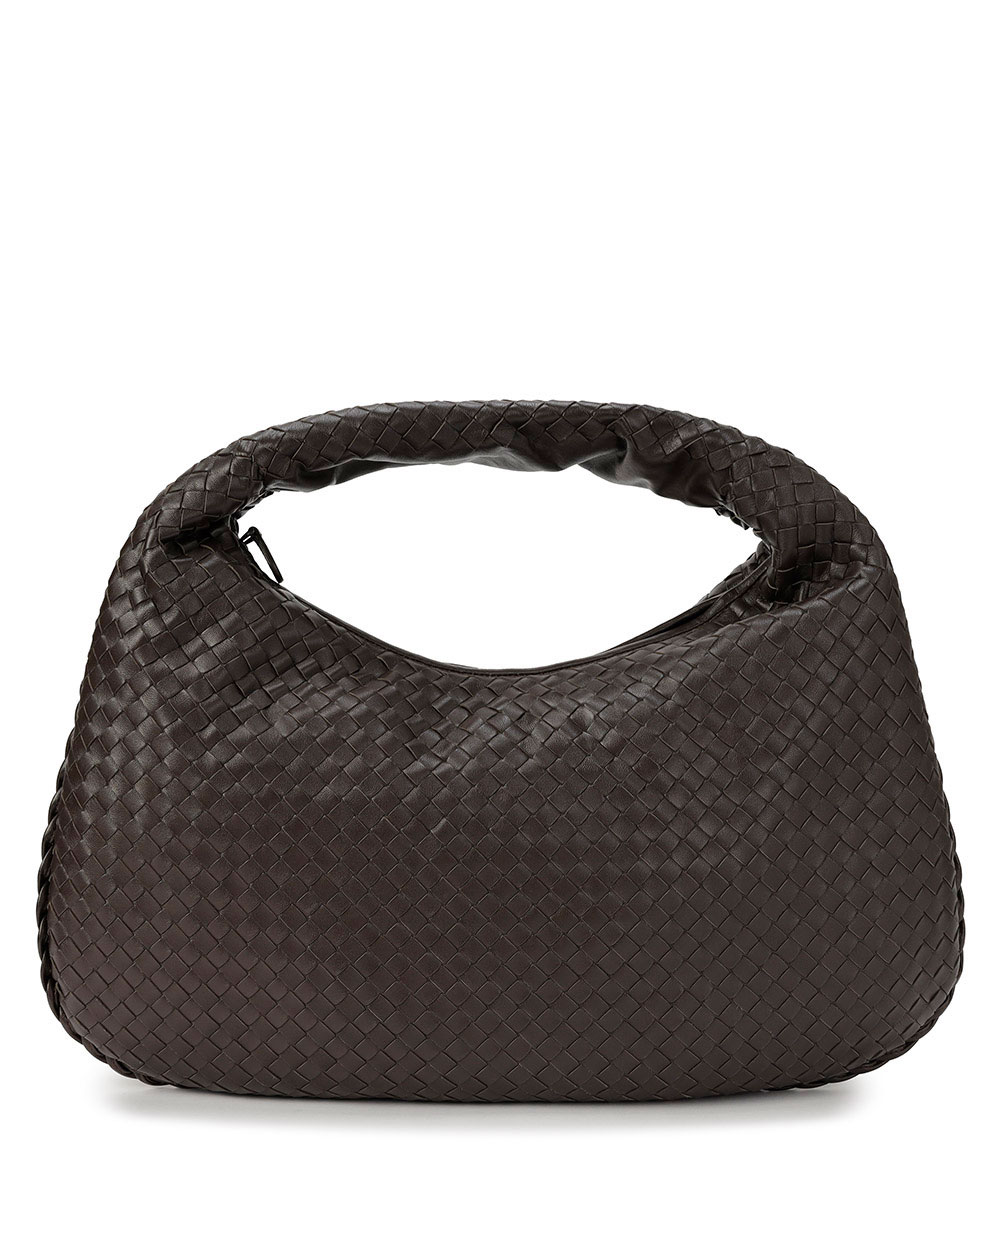 Woven Lamb Leather handbag